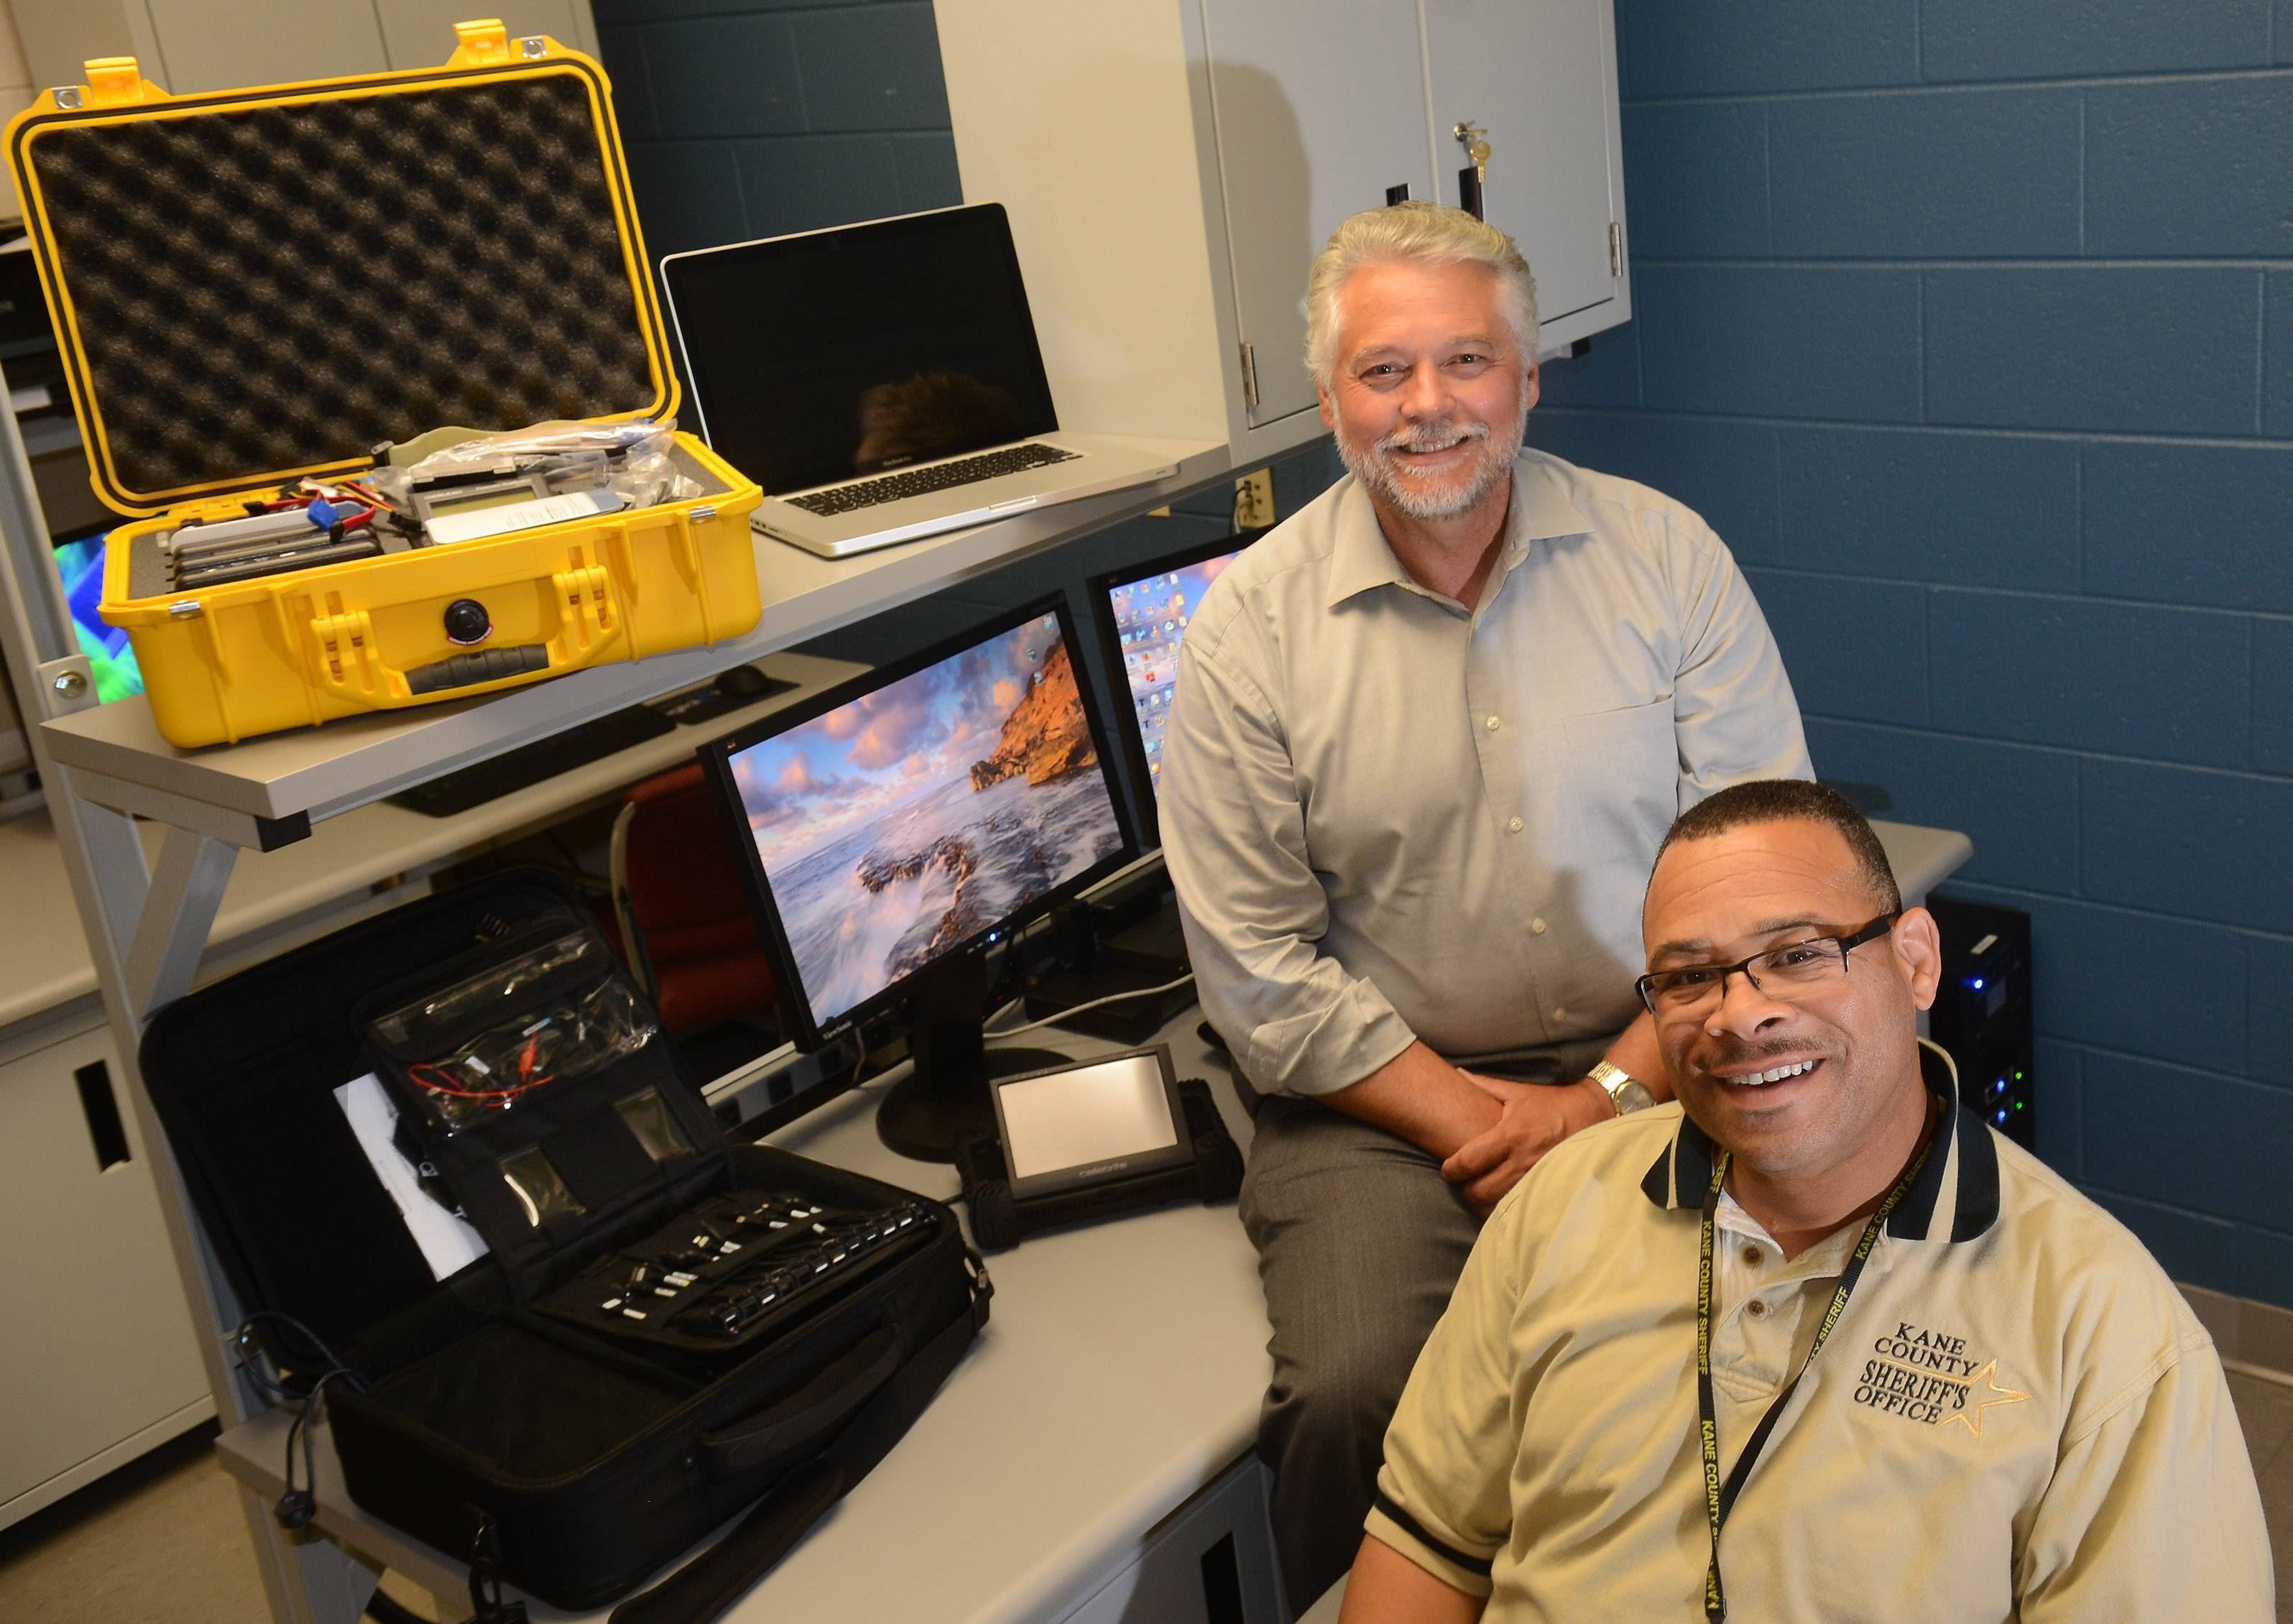 Elgin Community College Associate Dean Scott Adams, left, and Keith Smith, a Kane County sheriff's detective who specializes in cybercrimes and digital forensics, oversee the college's new digital forensics lab.